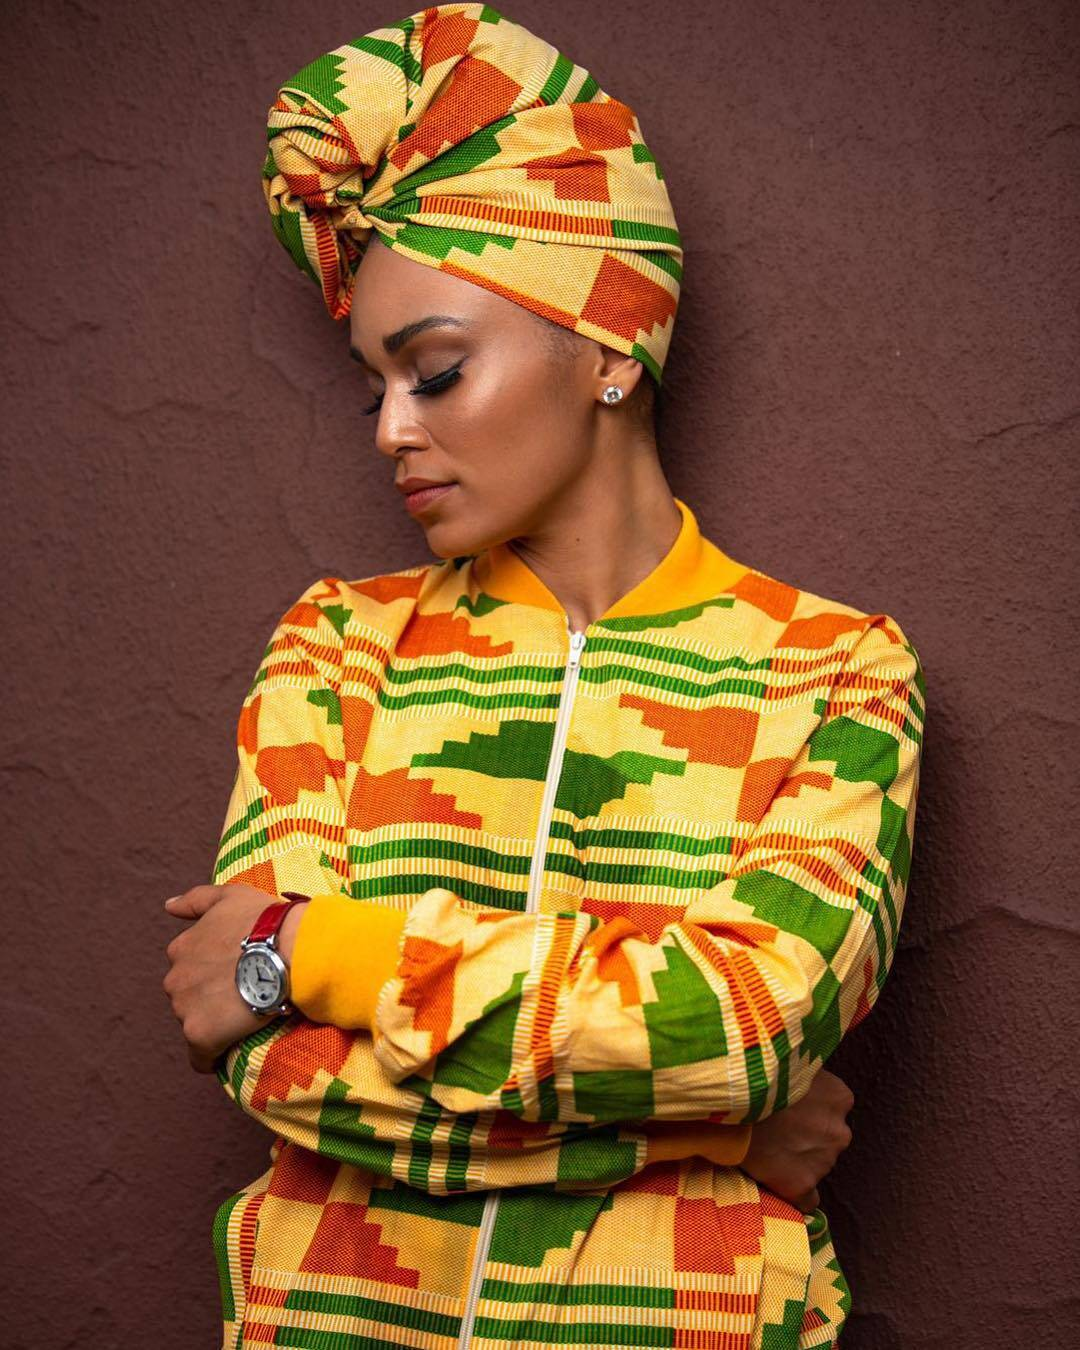 Pearl coordinating Kente bomber jacket with head-wrap